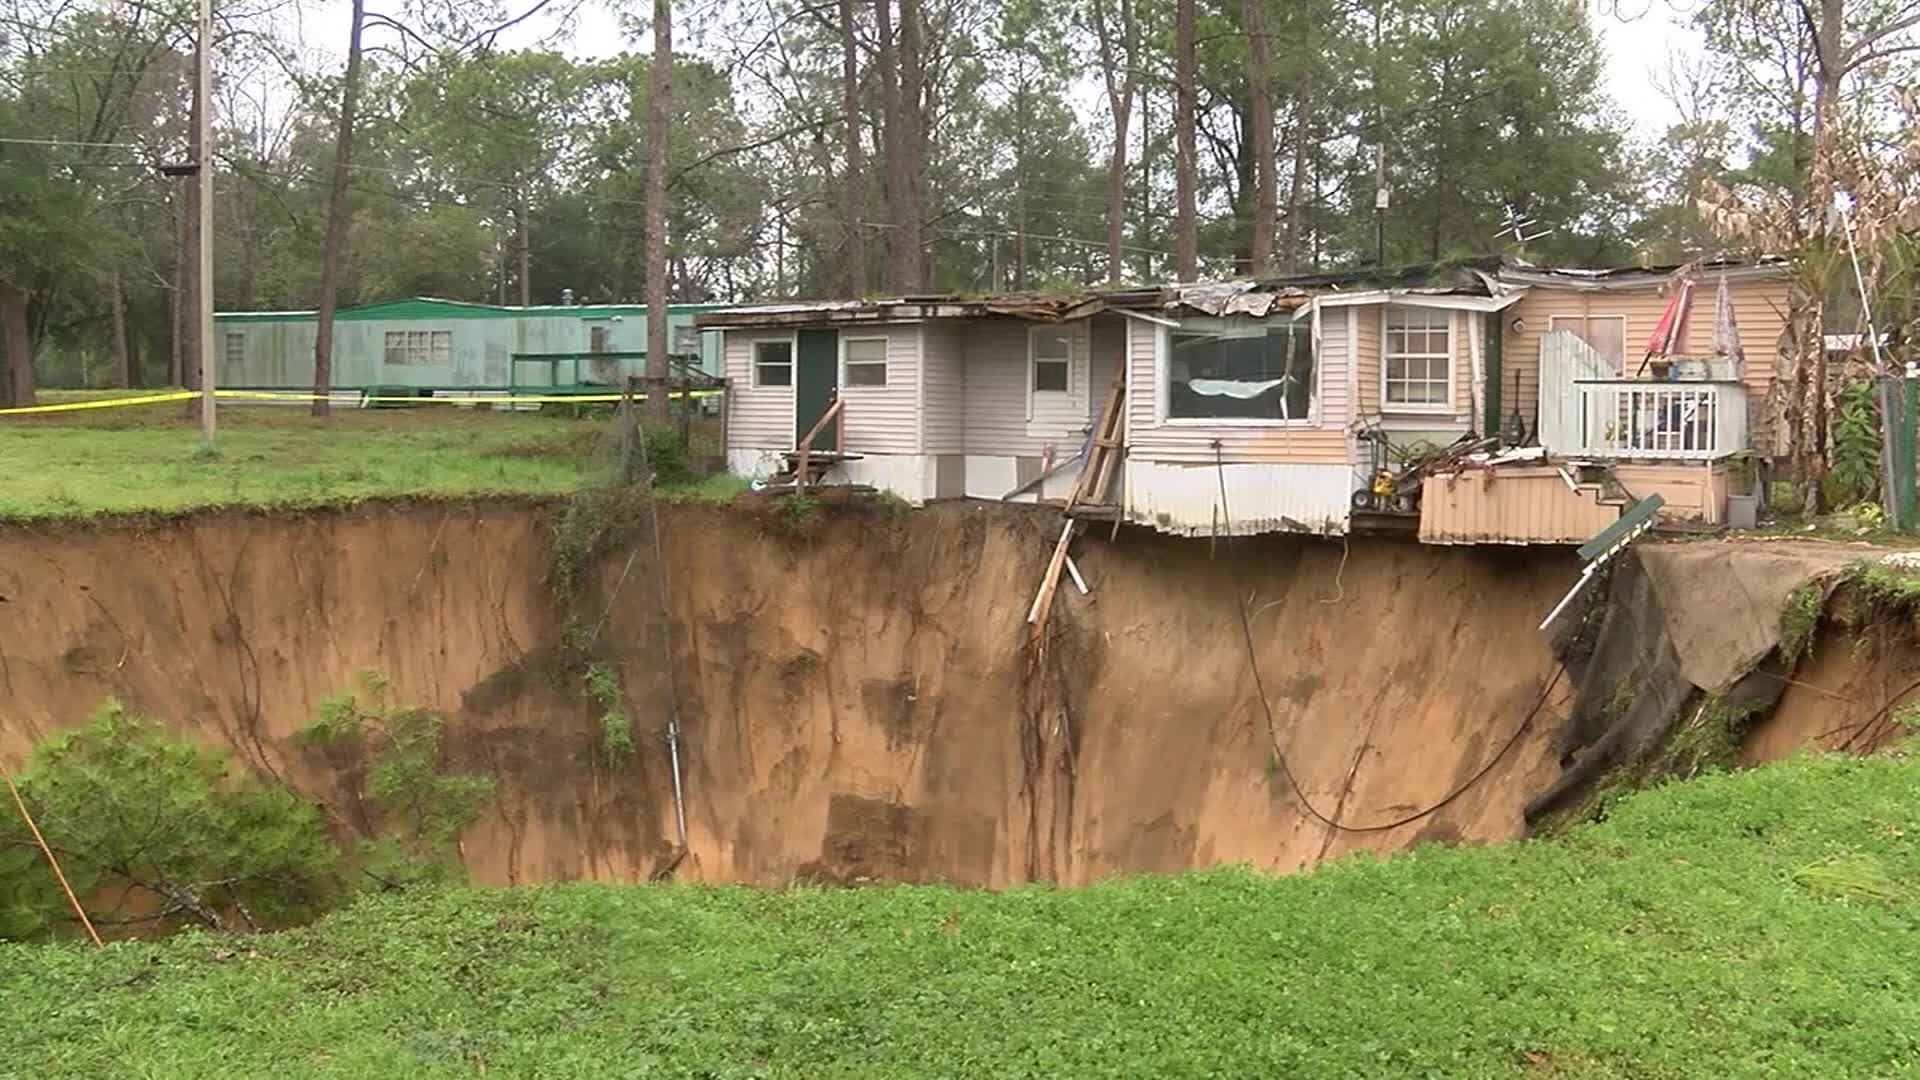 Large sinkhole opens up at Florida mobile home park | WFLA